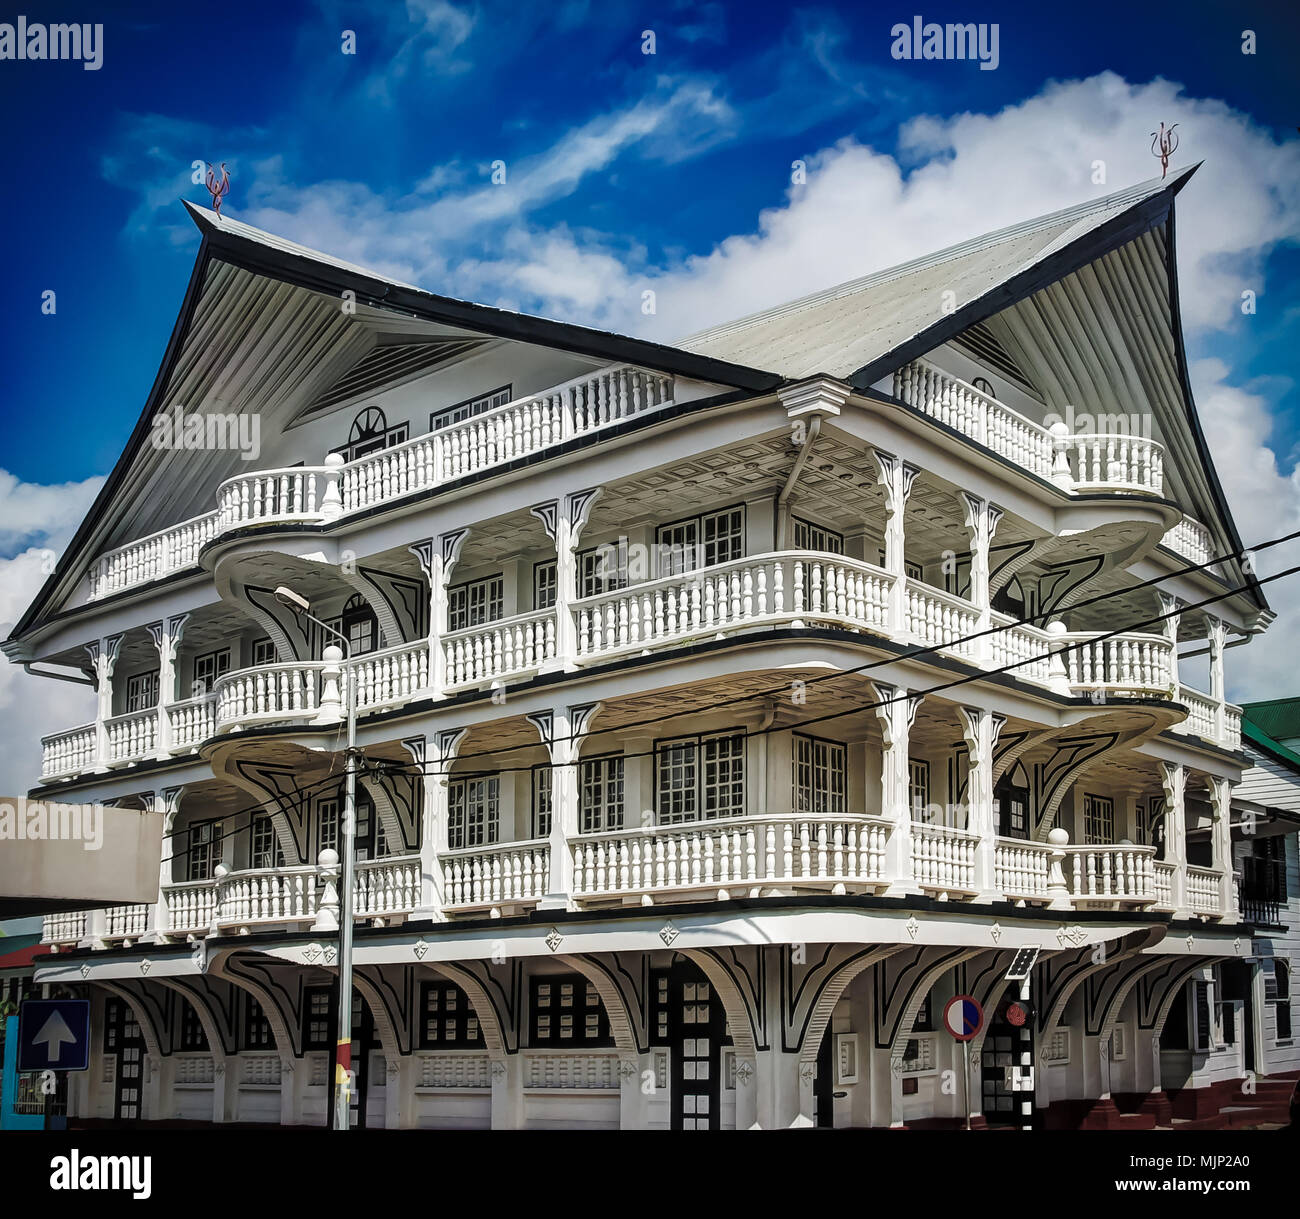 Exterior of house in the historic city of Paramaribo, Suriname. The historic inner city of Paramaribo is a UNESCO World Heritage Site since 2002. - Stock Image